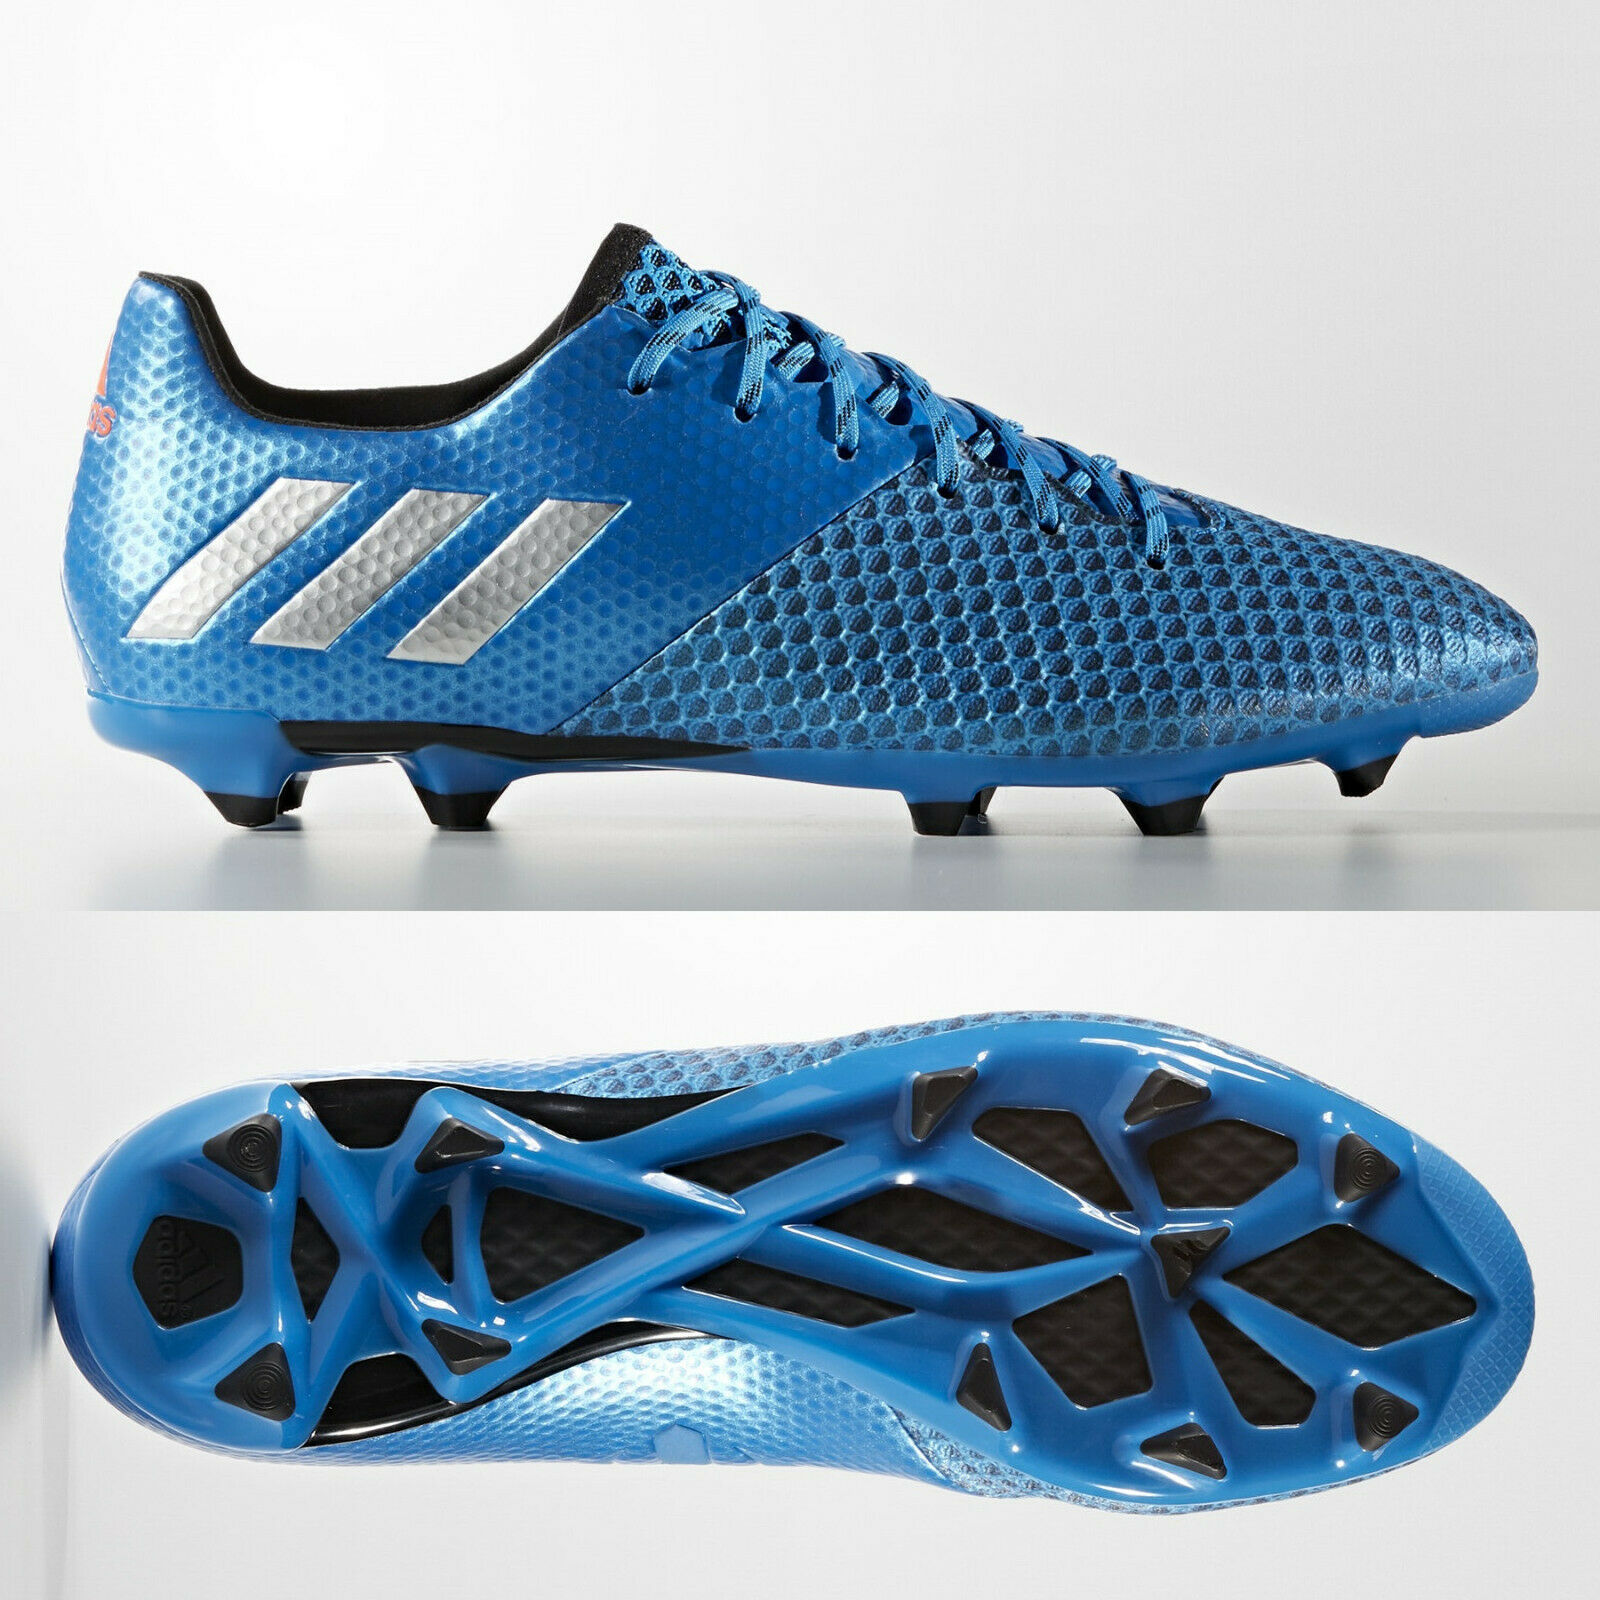 Adidas Messi 16.2 FG Mens Football Stiefel Firm Ground Blau Größe 7.5 8 9.5 10.5 11